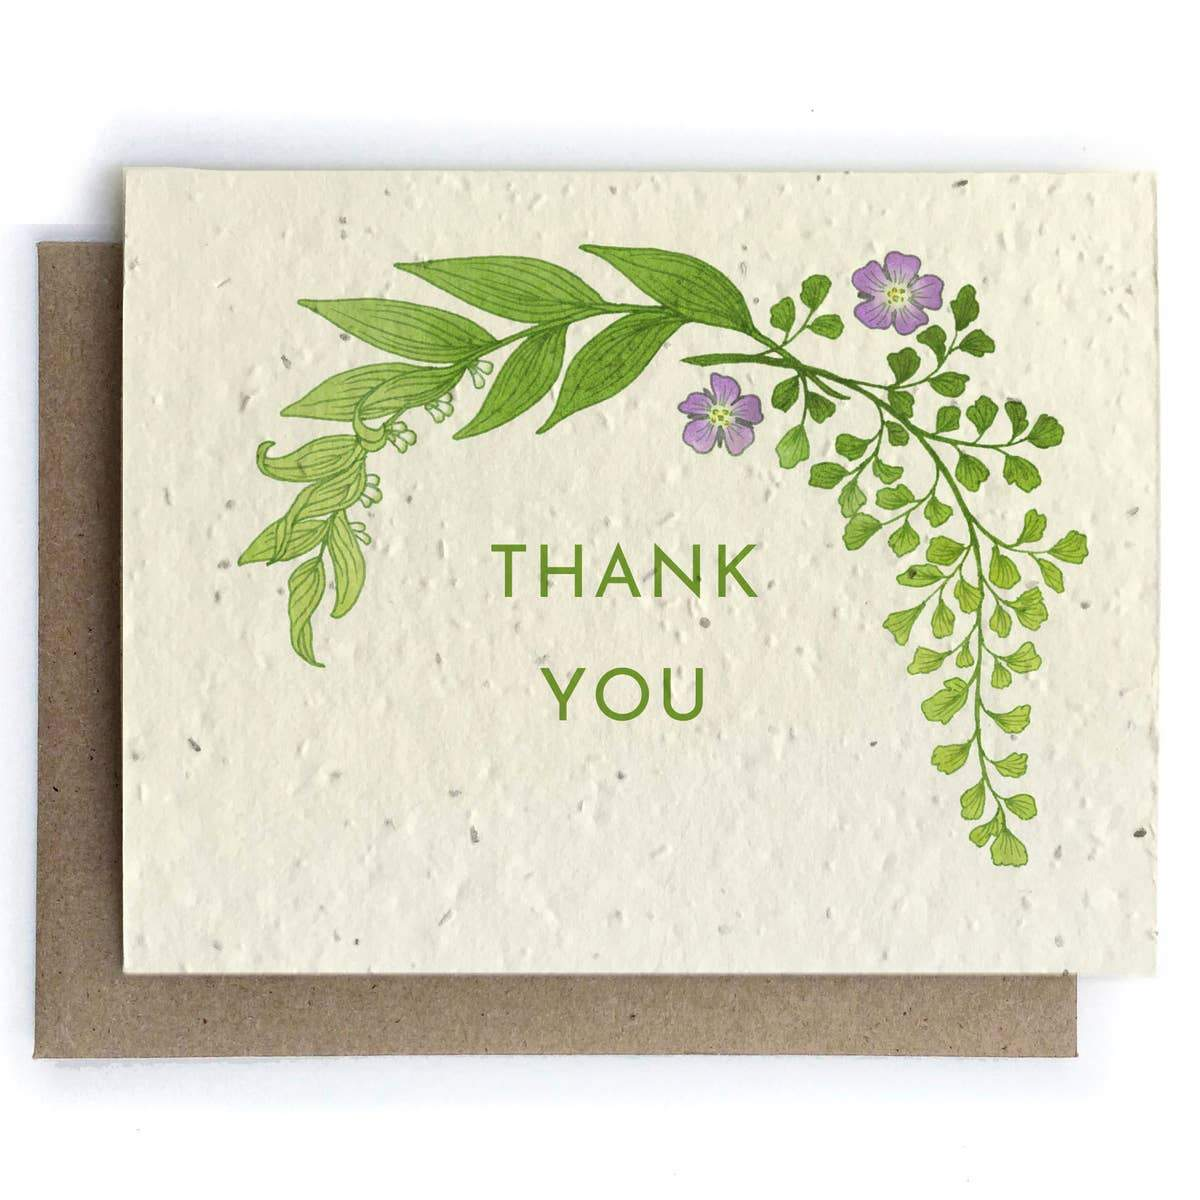 Plantable Seed Paper Greeting Card - Thank You - The Bower Studio -Freehand Market